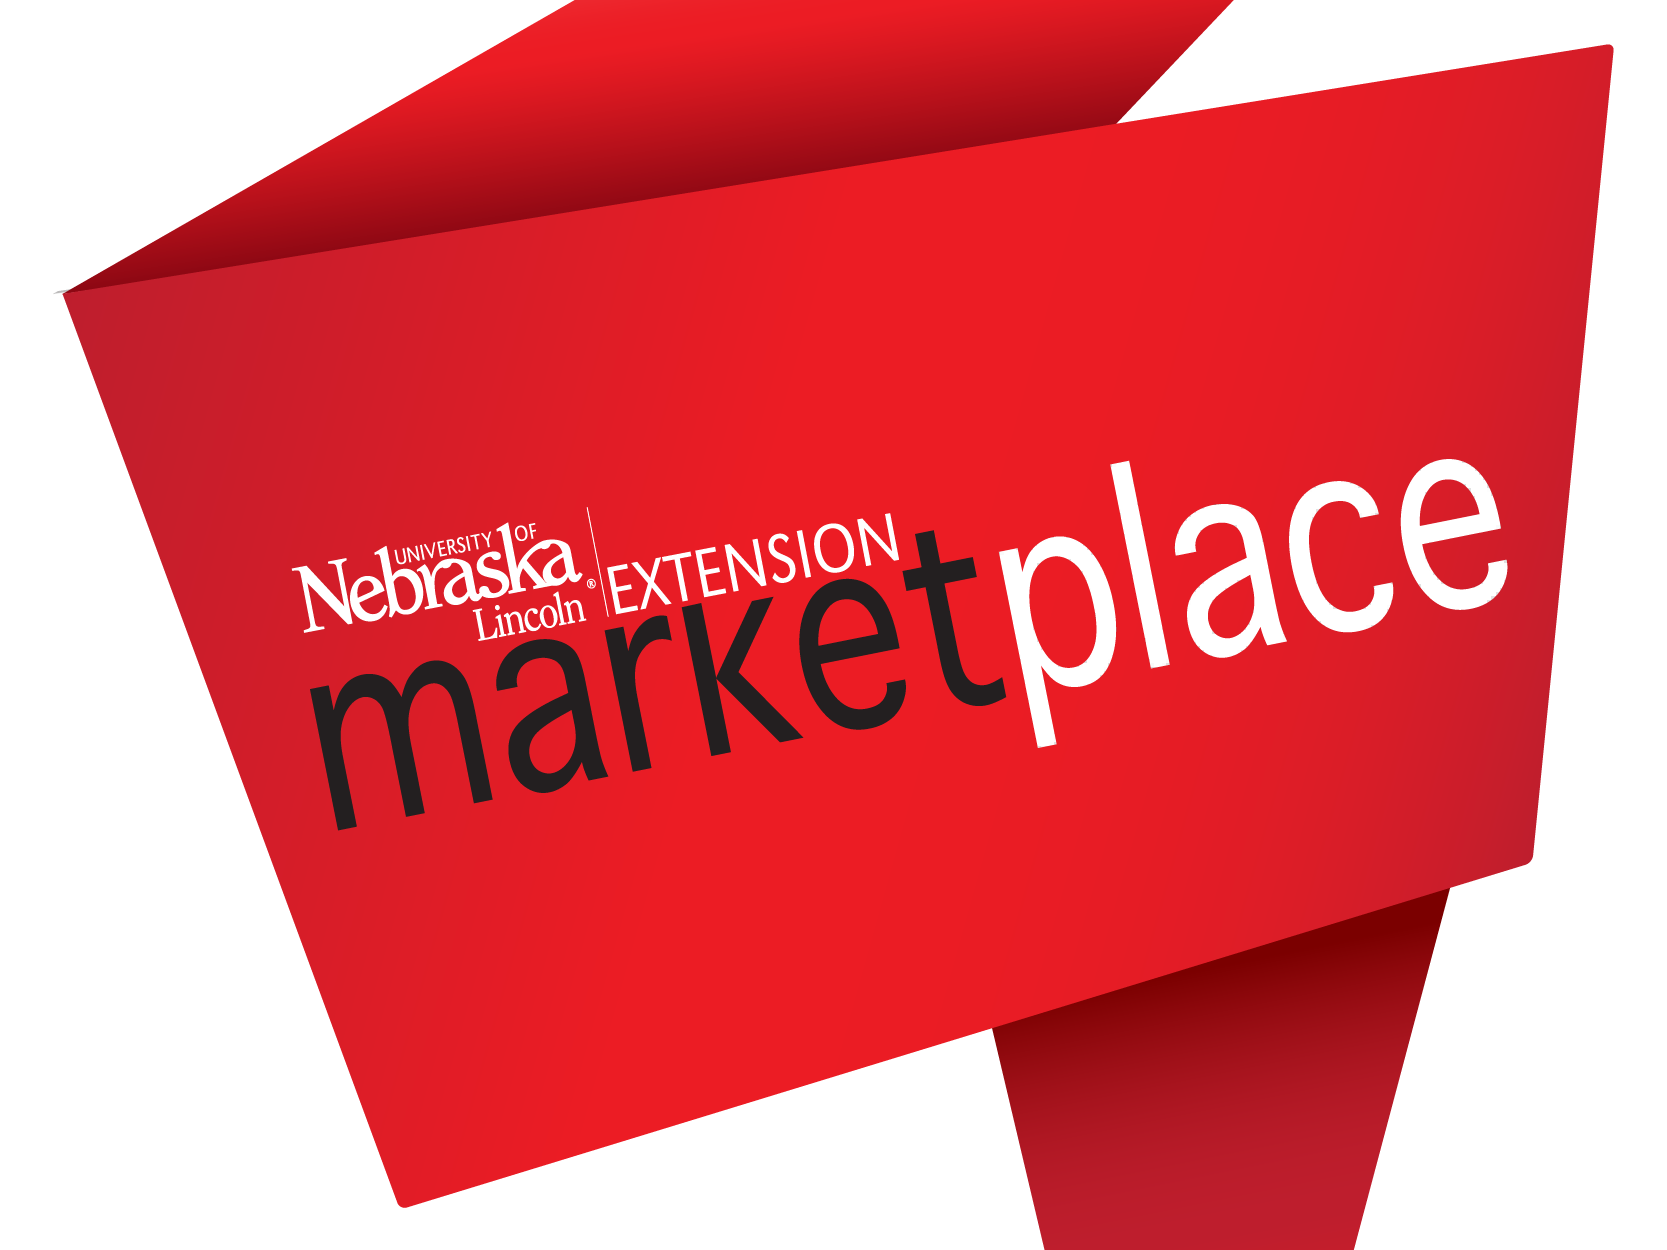 Extension Marketplace Banner